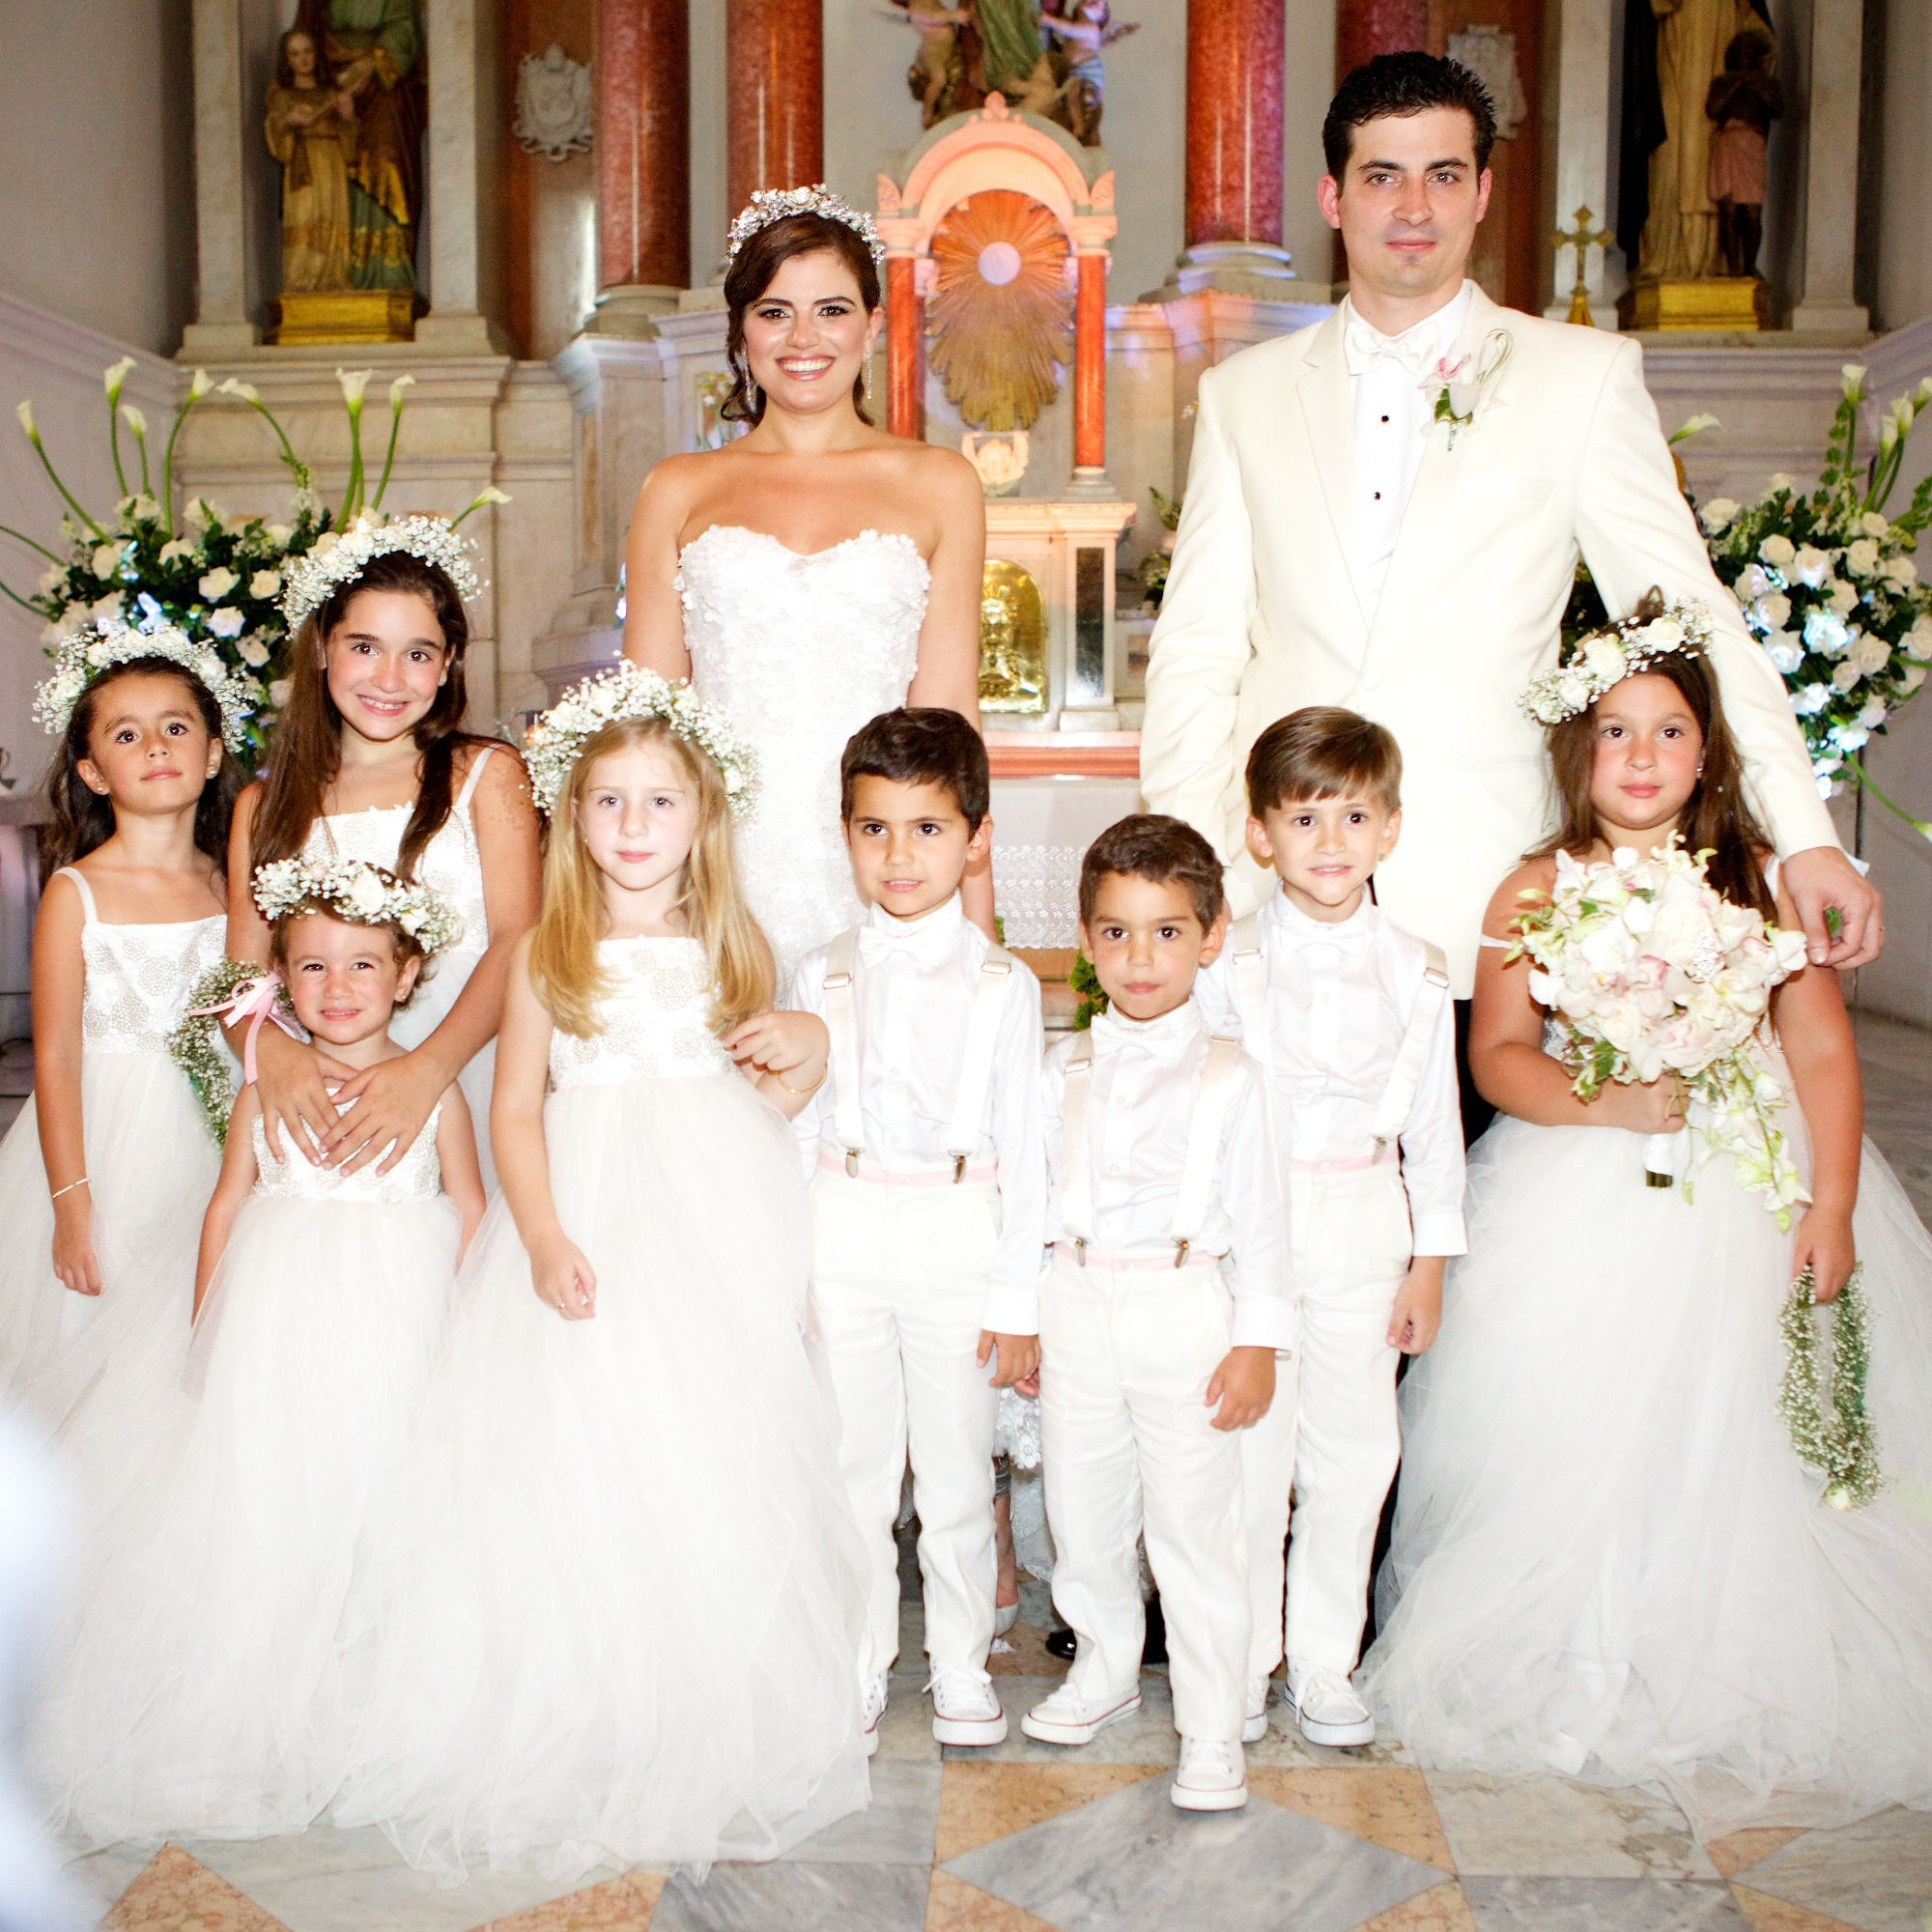 All White Wedding: Ring Bearer Outfits That Are Anything But Ordinary